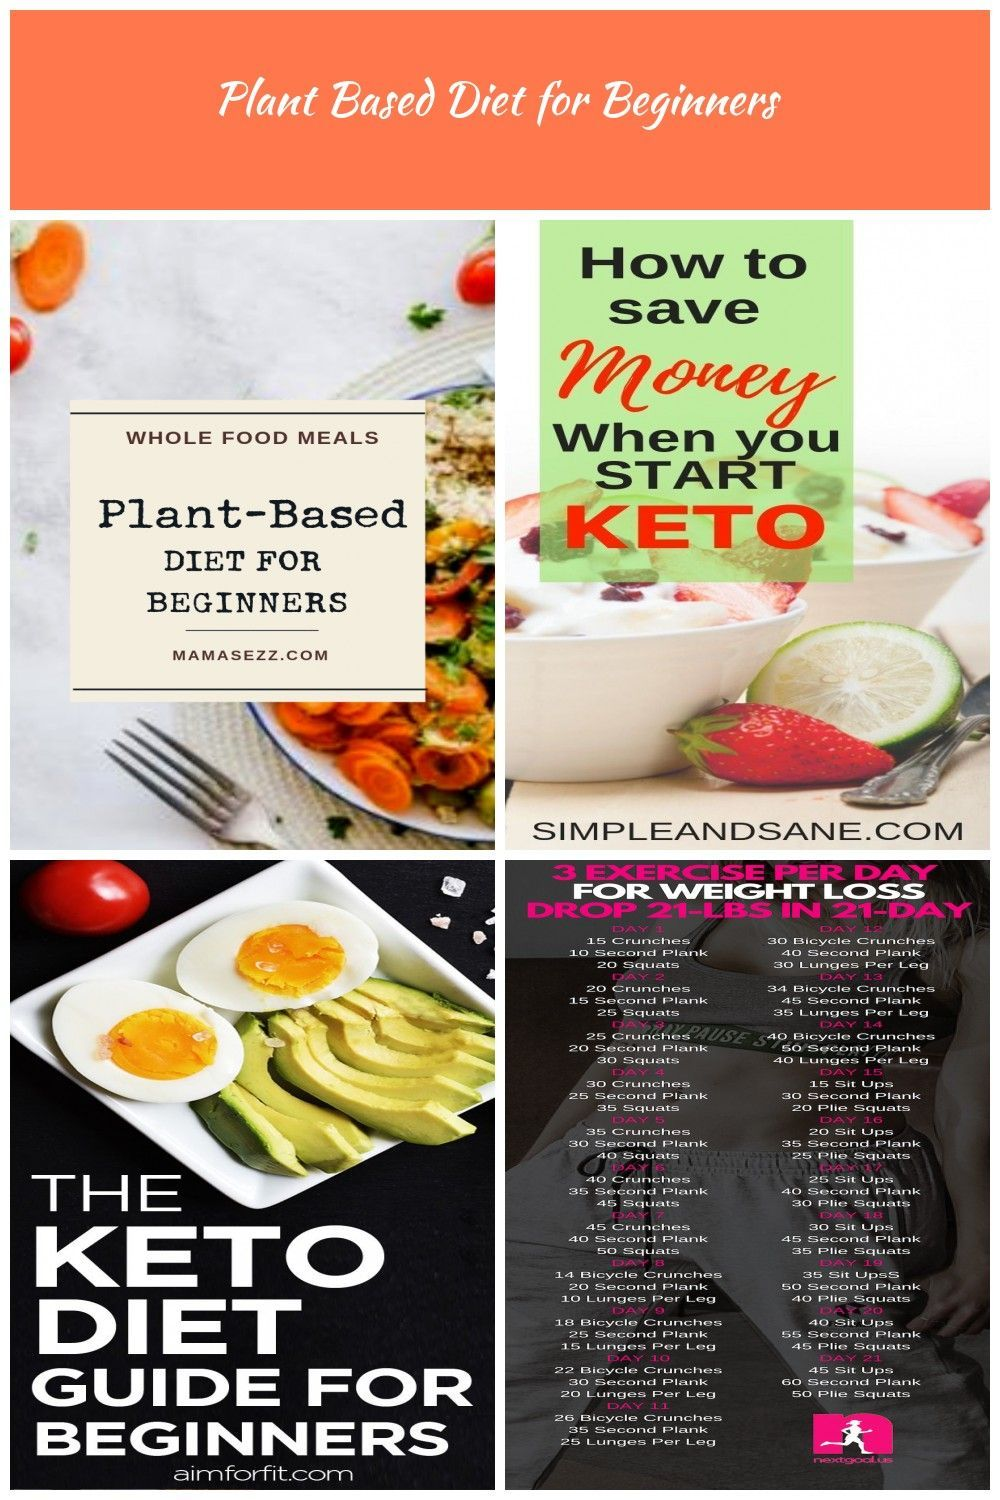 Plant-Based Diet Tips for Beginners | Mamasezz.com #healthy #vegetarian #plantbased #recipes diet plan for beginners Plant Based Diet for Beginners #plantbasedrecipesforbeginners Plant-Based Diet Tips for Beginners | Mamasezz.com #healthy #vegetarian #plantbased #recipes diet plan for beginners Plant Based Diet for Beginners #plantbasedrecipesforbeginners